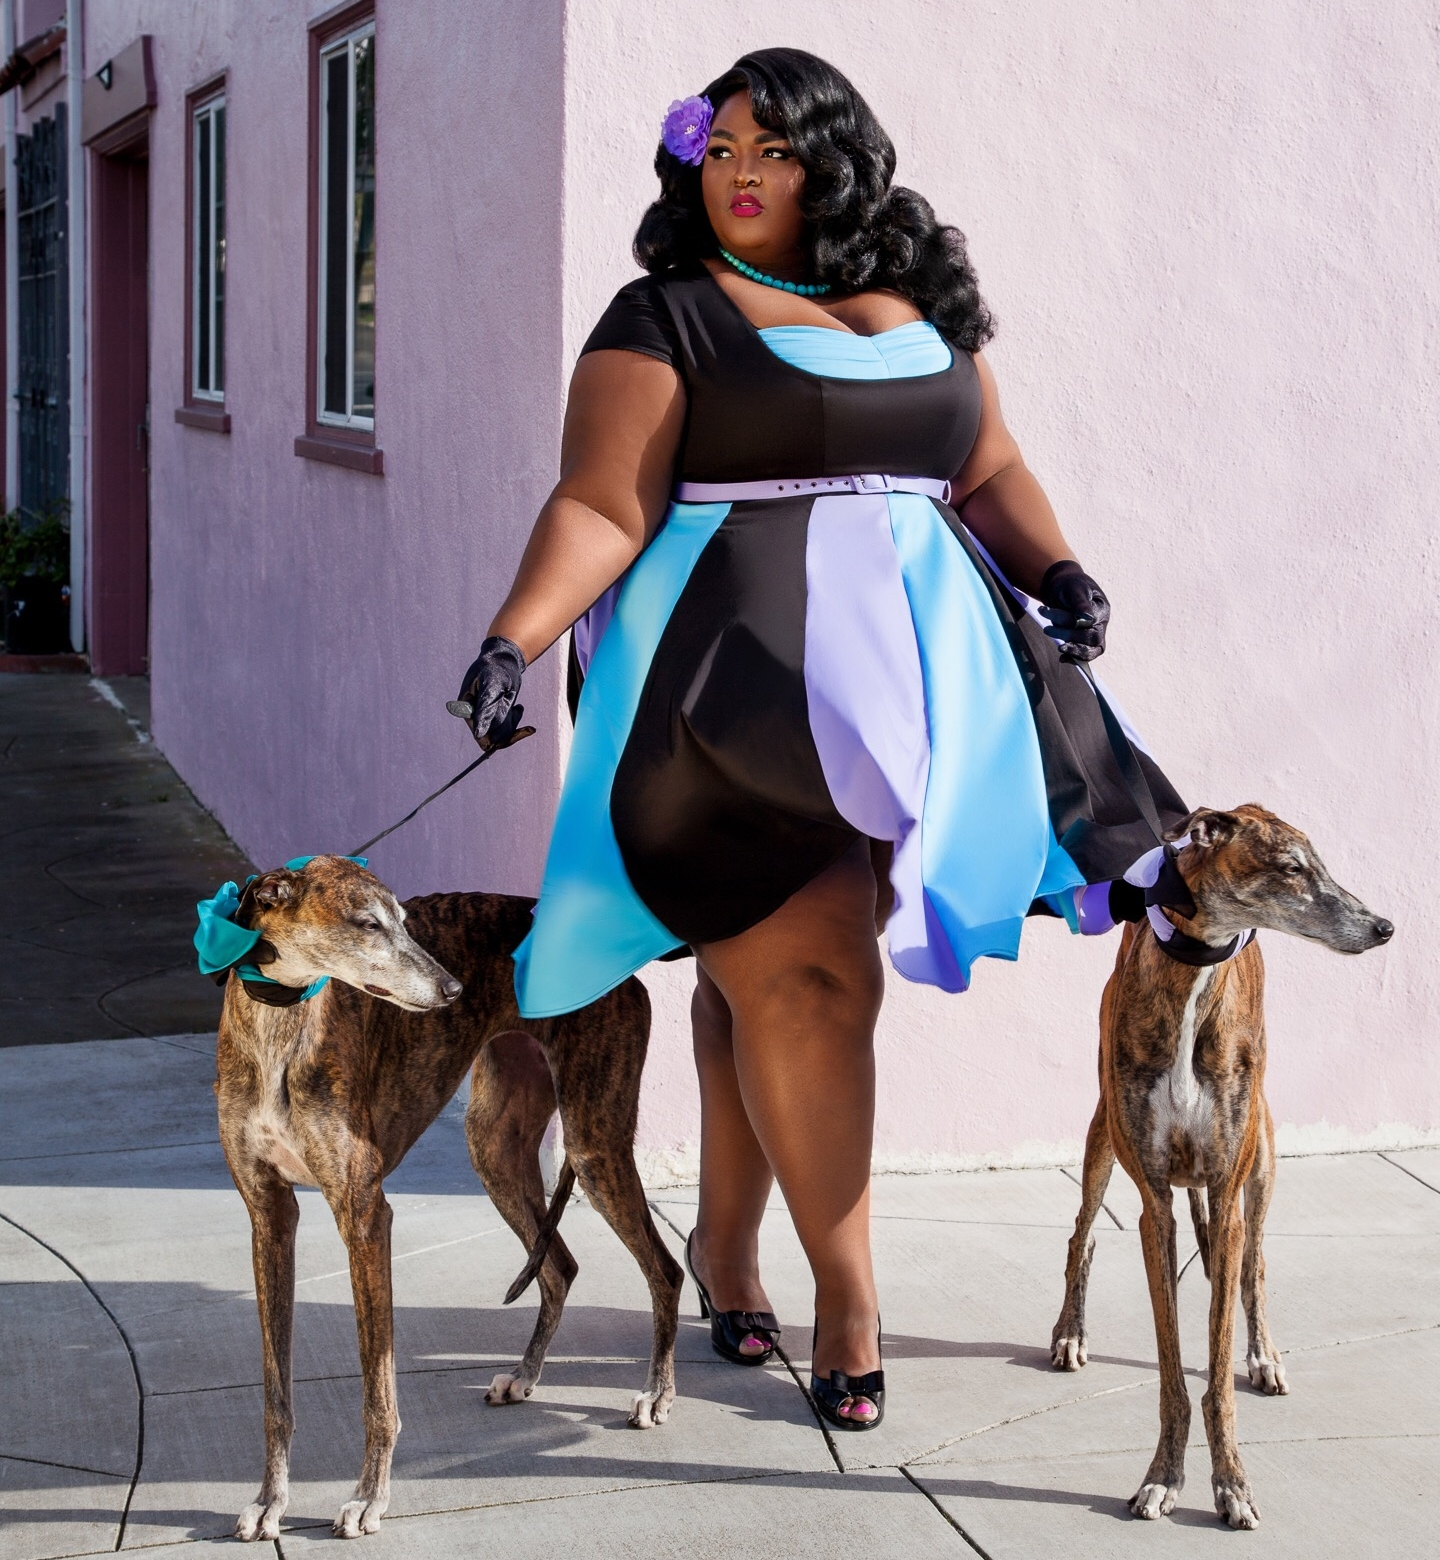 """Saucye West - Saucye West (she/her) is your self-proclaimed """"Favorite Fat Girl""""She began modeling in 2010 for Full Figure Entertainment and transitioned into runway shortly after. She quickly began making a name for herself because she was often used by indie designers as one of the only visibly fat models over a size 26Saucye is also a proud fat activist that uses her platform to show radical self love. Constantly trying to bridge the gap between the fat positive and body positive worlds.In 2017 she launched he campaign for the hashtag #fatandfree which let women declare that they were going to love their bodies without apology and show this on social media. Now this hashtag is a mantra and a movement.@saucyewestwww.facebook.com/saucyewestplusmodelwww.saucyewestplusmodel.com"""